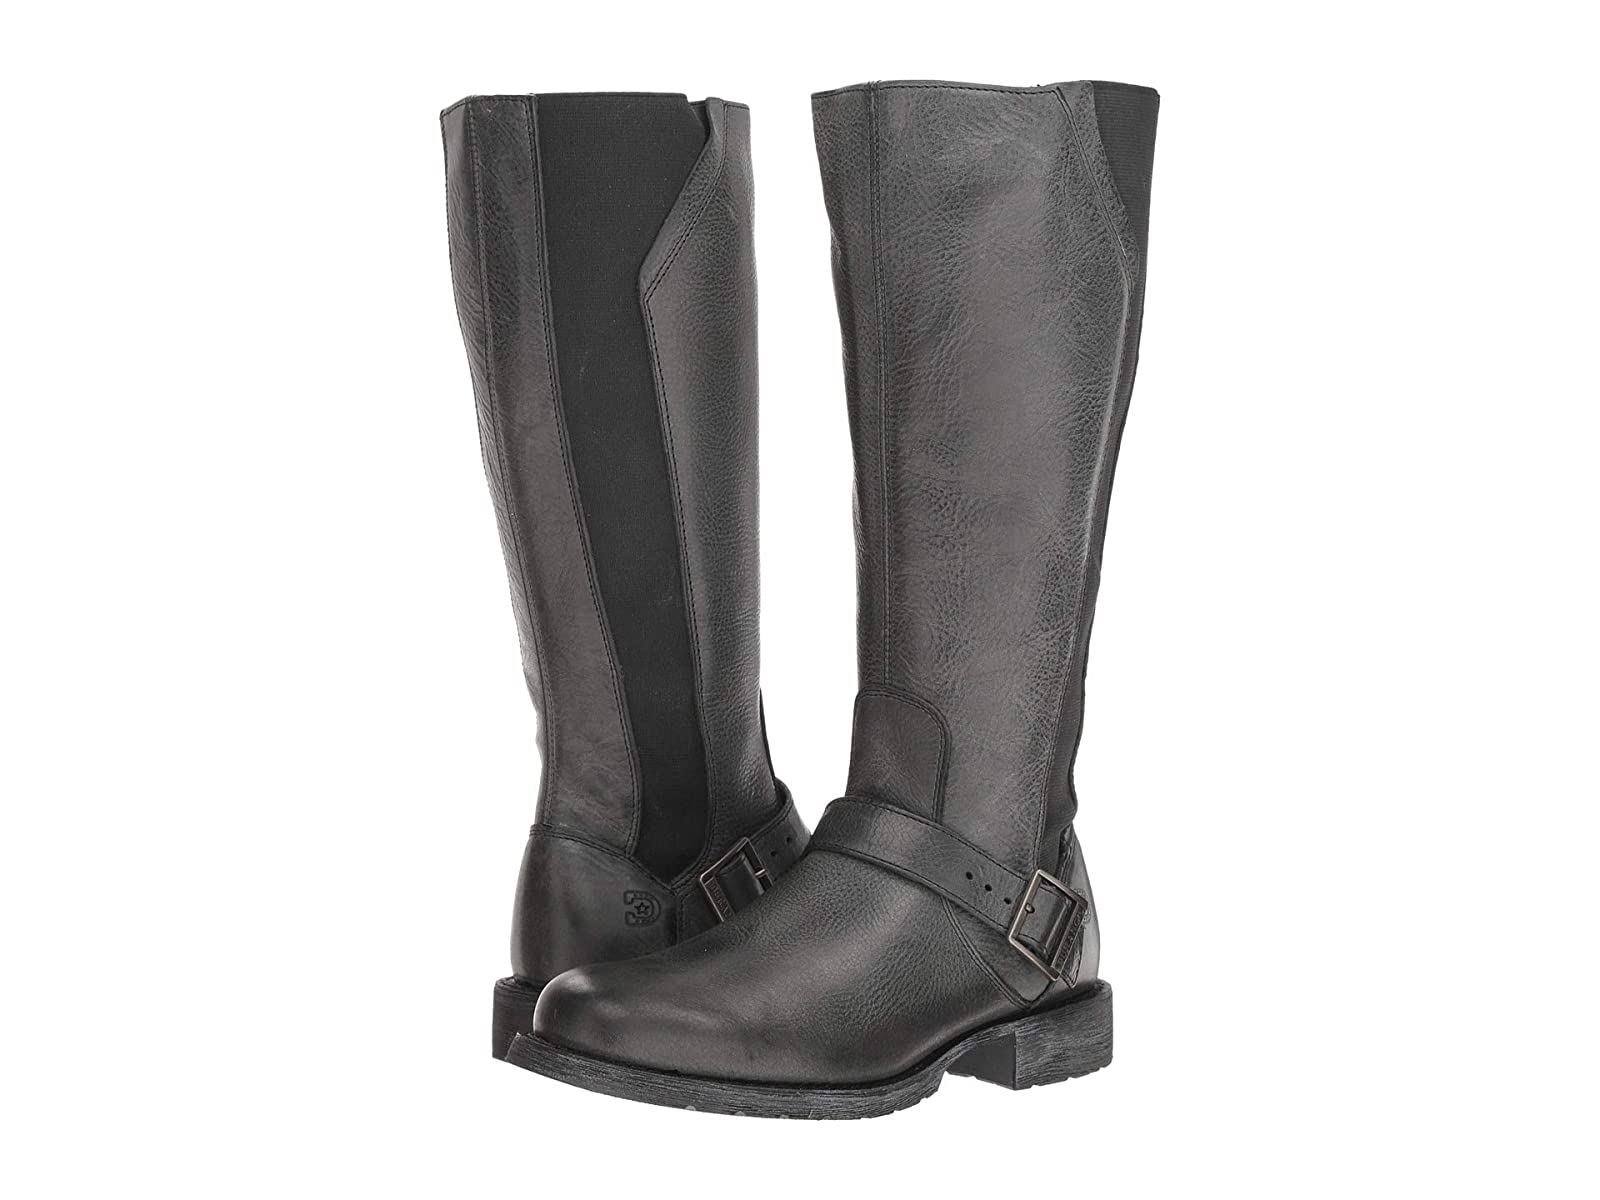 "Gentleman/Lady:Durango Gentleman/Lady:Durango Gentleman/Lady:Durango Crush 15"" Riding Boot:Shopkeeper 315ec1"